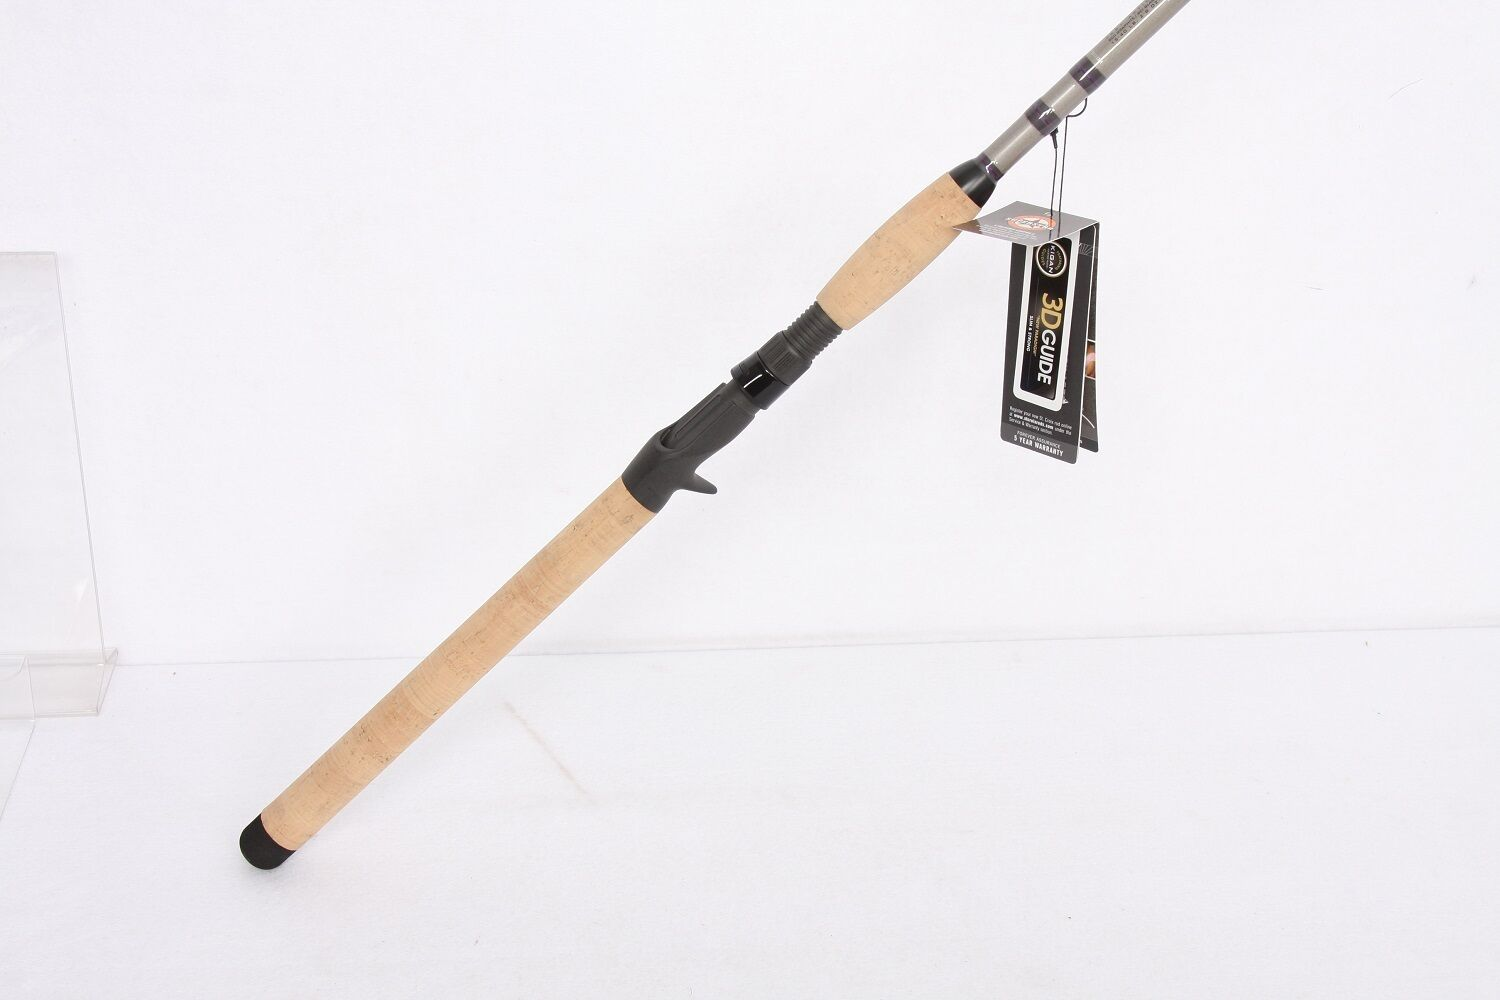 St Croix Mojo Cat Casting Rod 7ft MH